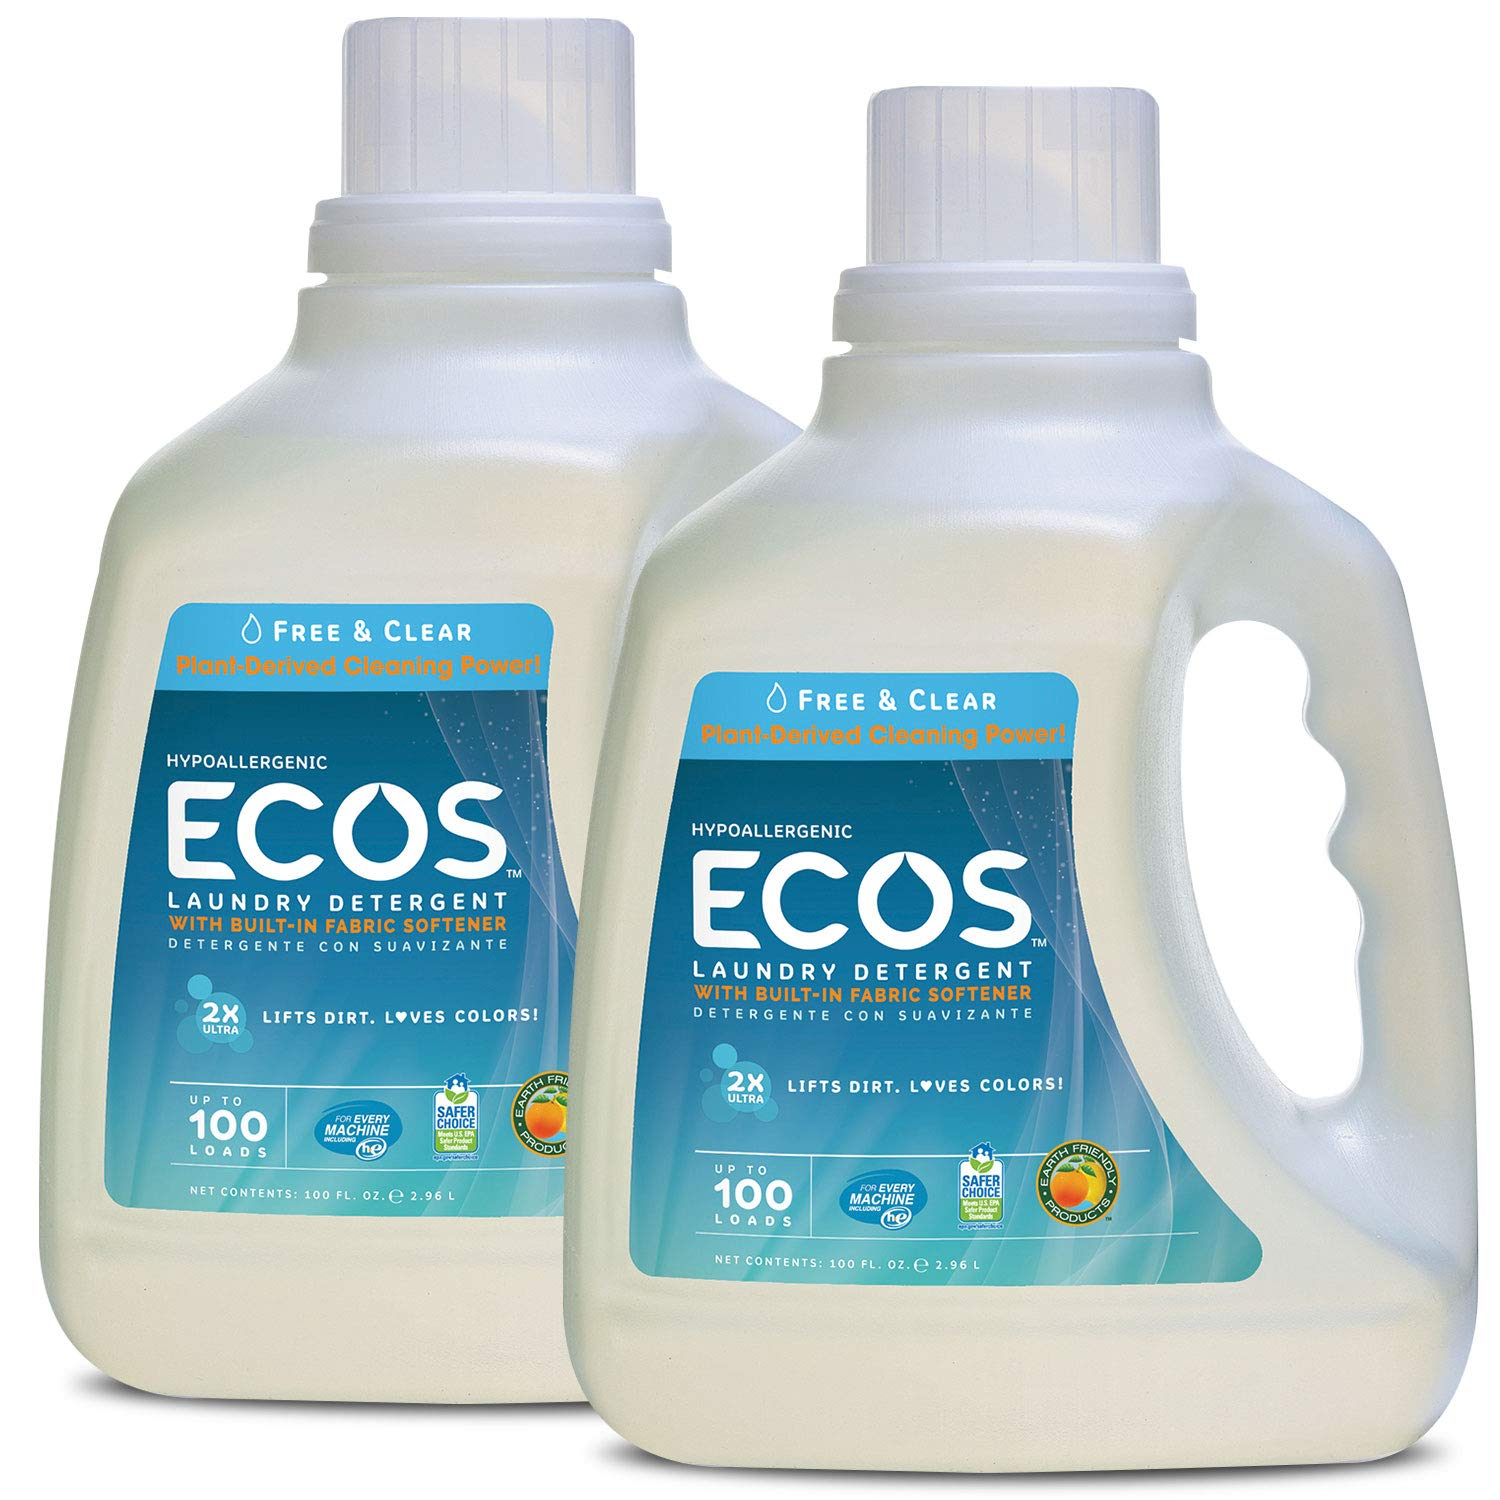 Earth Friendly Products Ecos 2x Liquid Laundry Detergent, Free & Clear, 100-Ounce Bottle (Pack of 2) by Earth Friendly Products